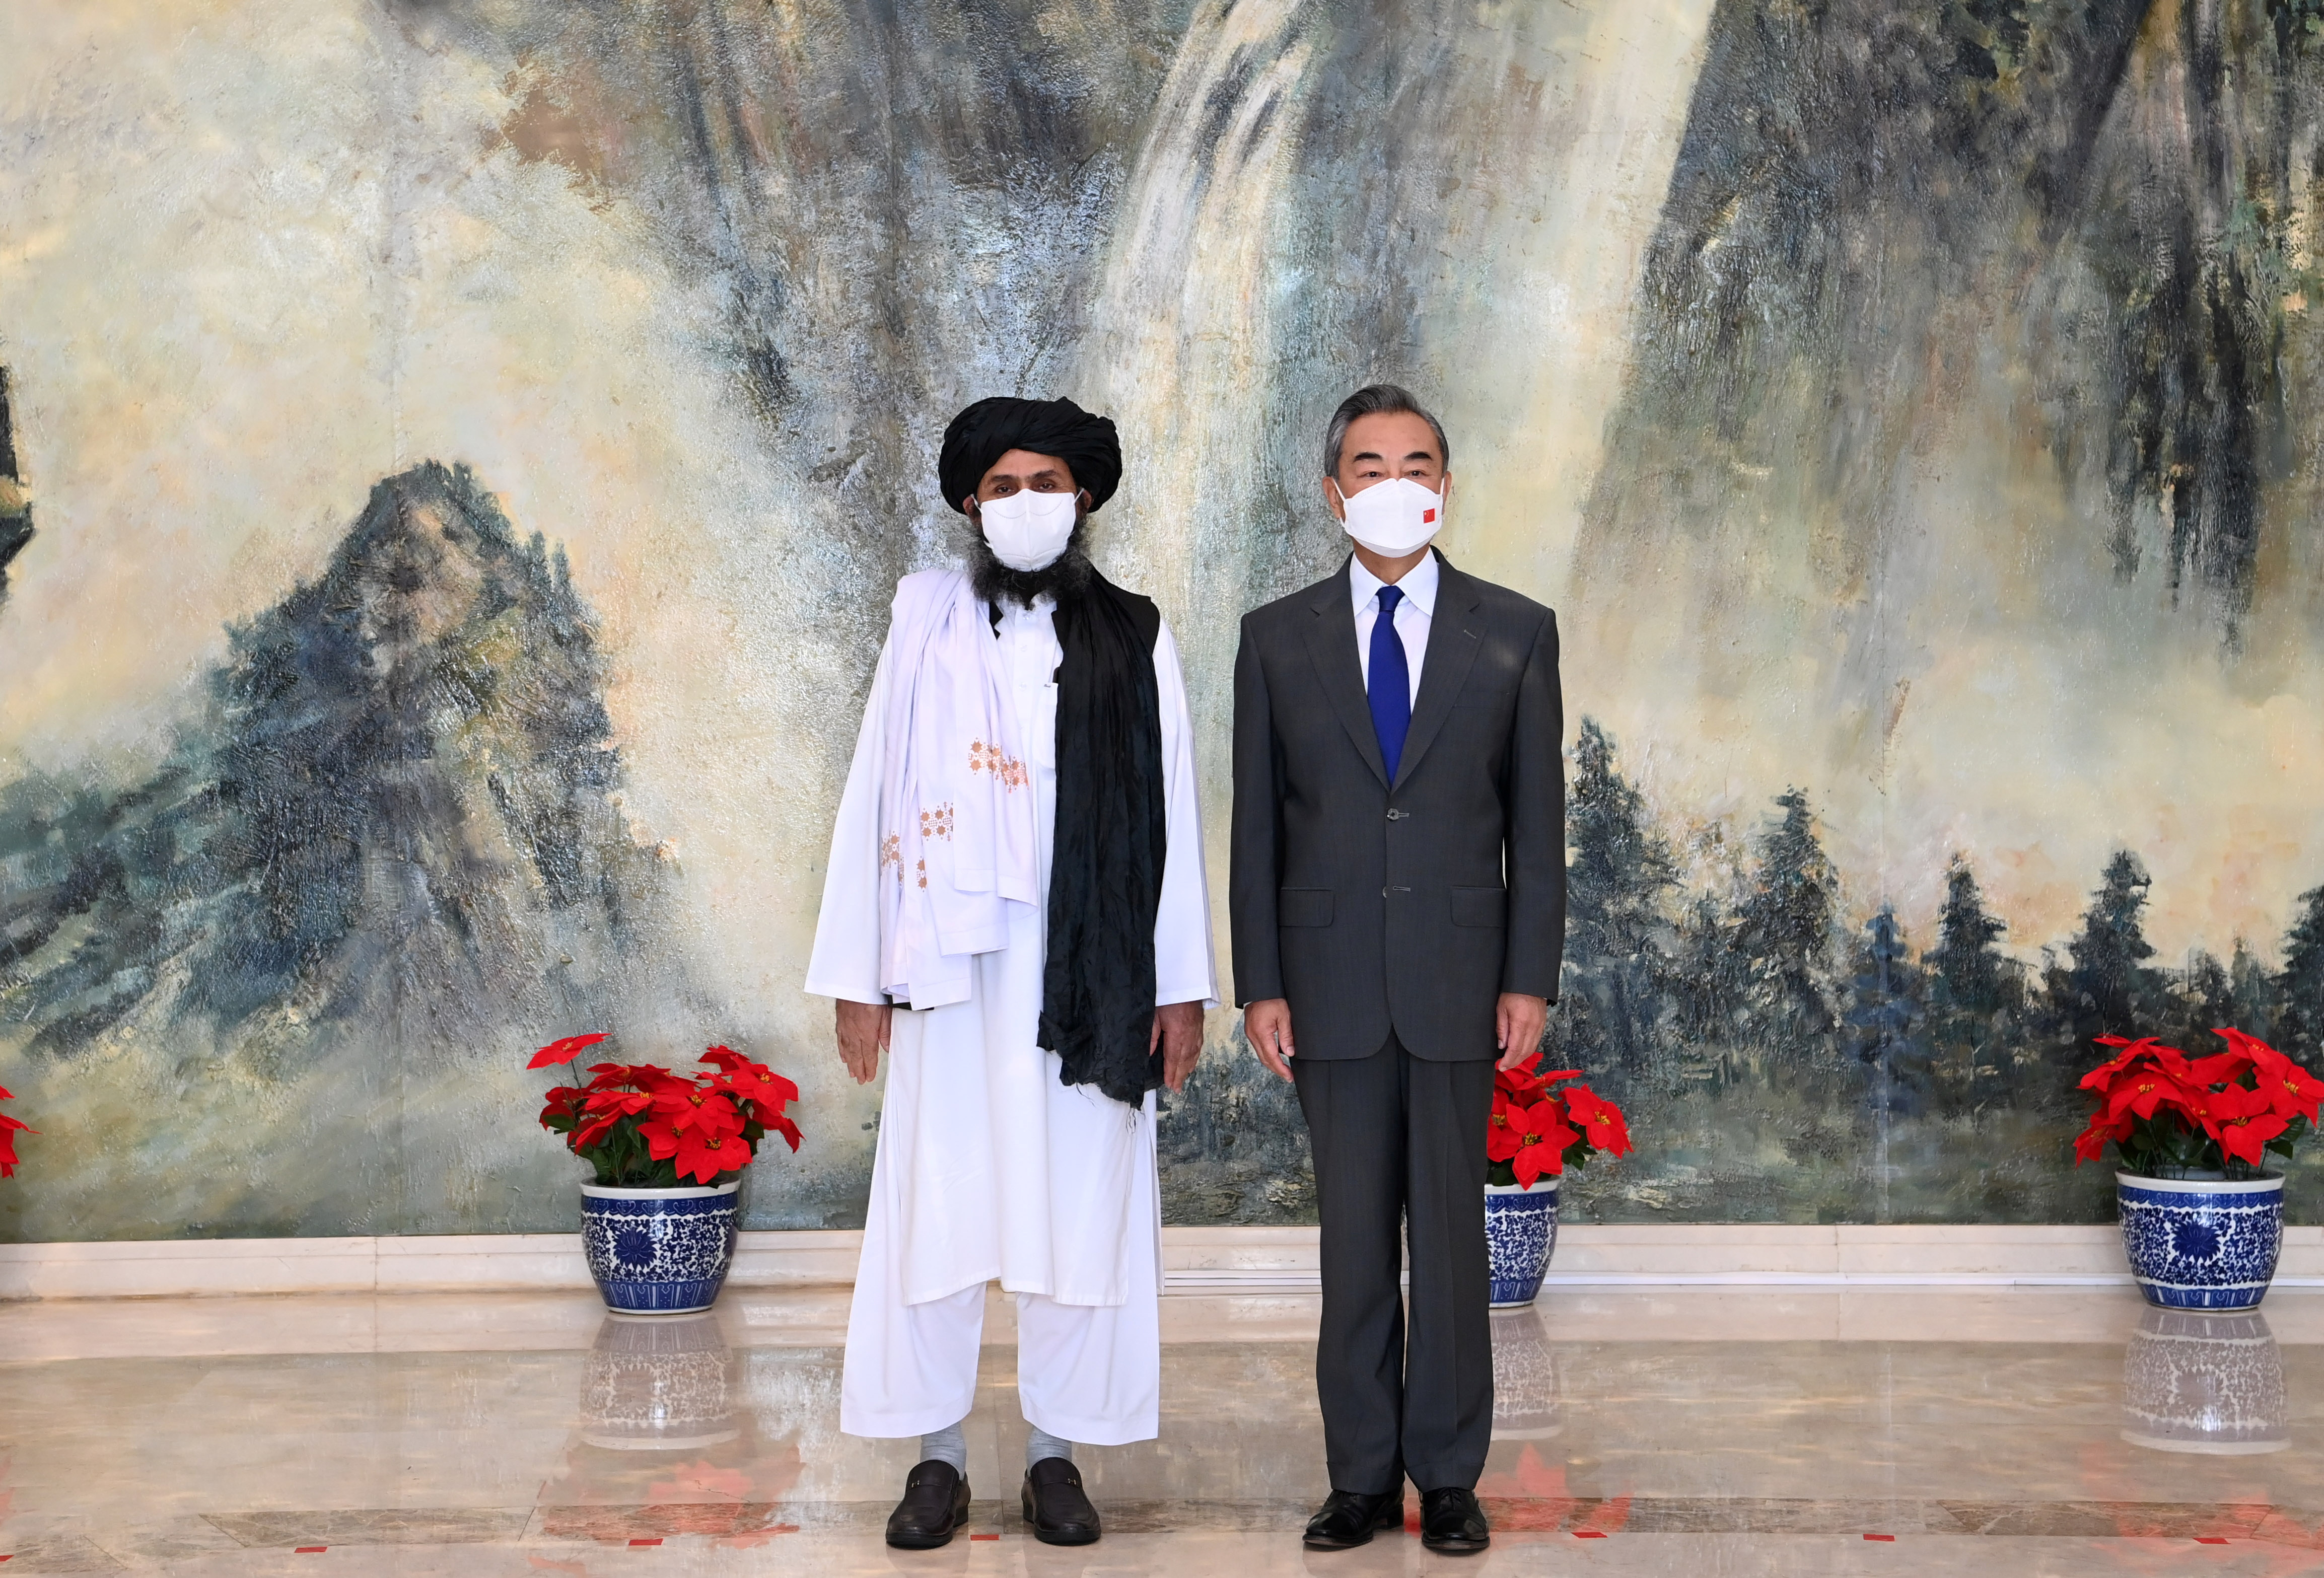 Chinese State Councilor and Foreign Minister Wang Yi meets with Mullah Abdul Ghani Baradar, political chief of Afghanistan's Taliban, in Tianjin, China July 28, 2021.  Li Ran/Xinhua via REUTERS